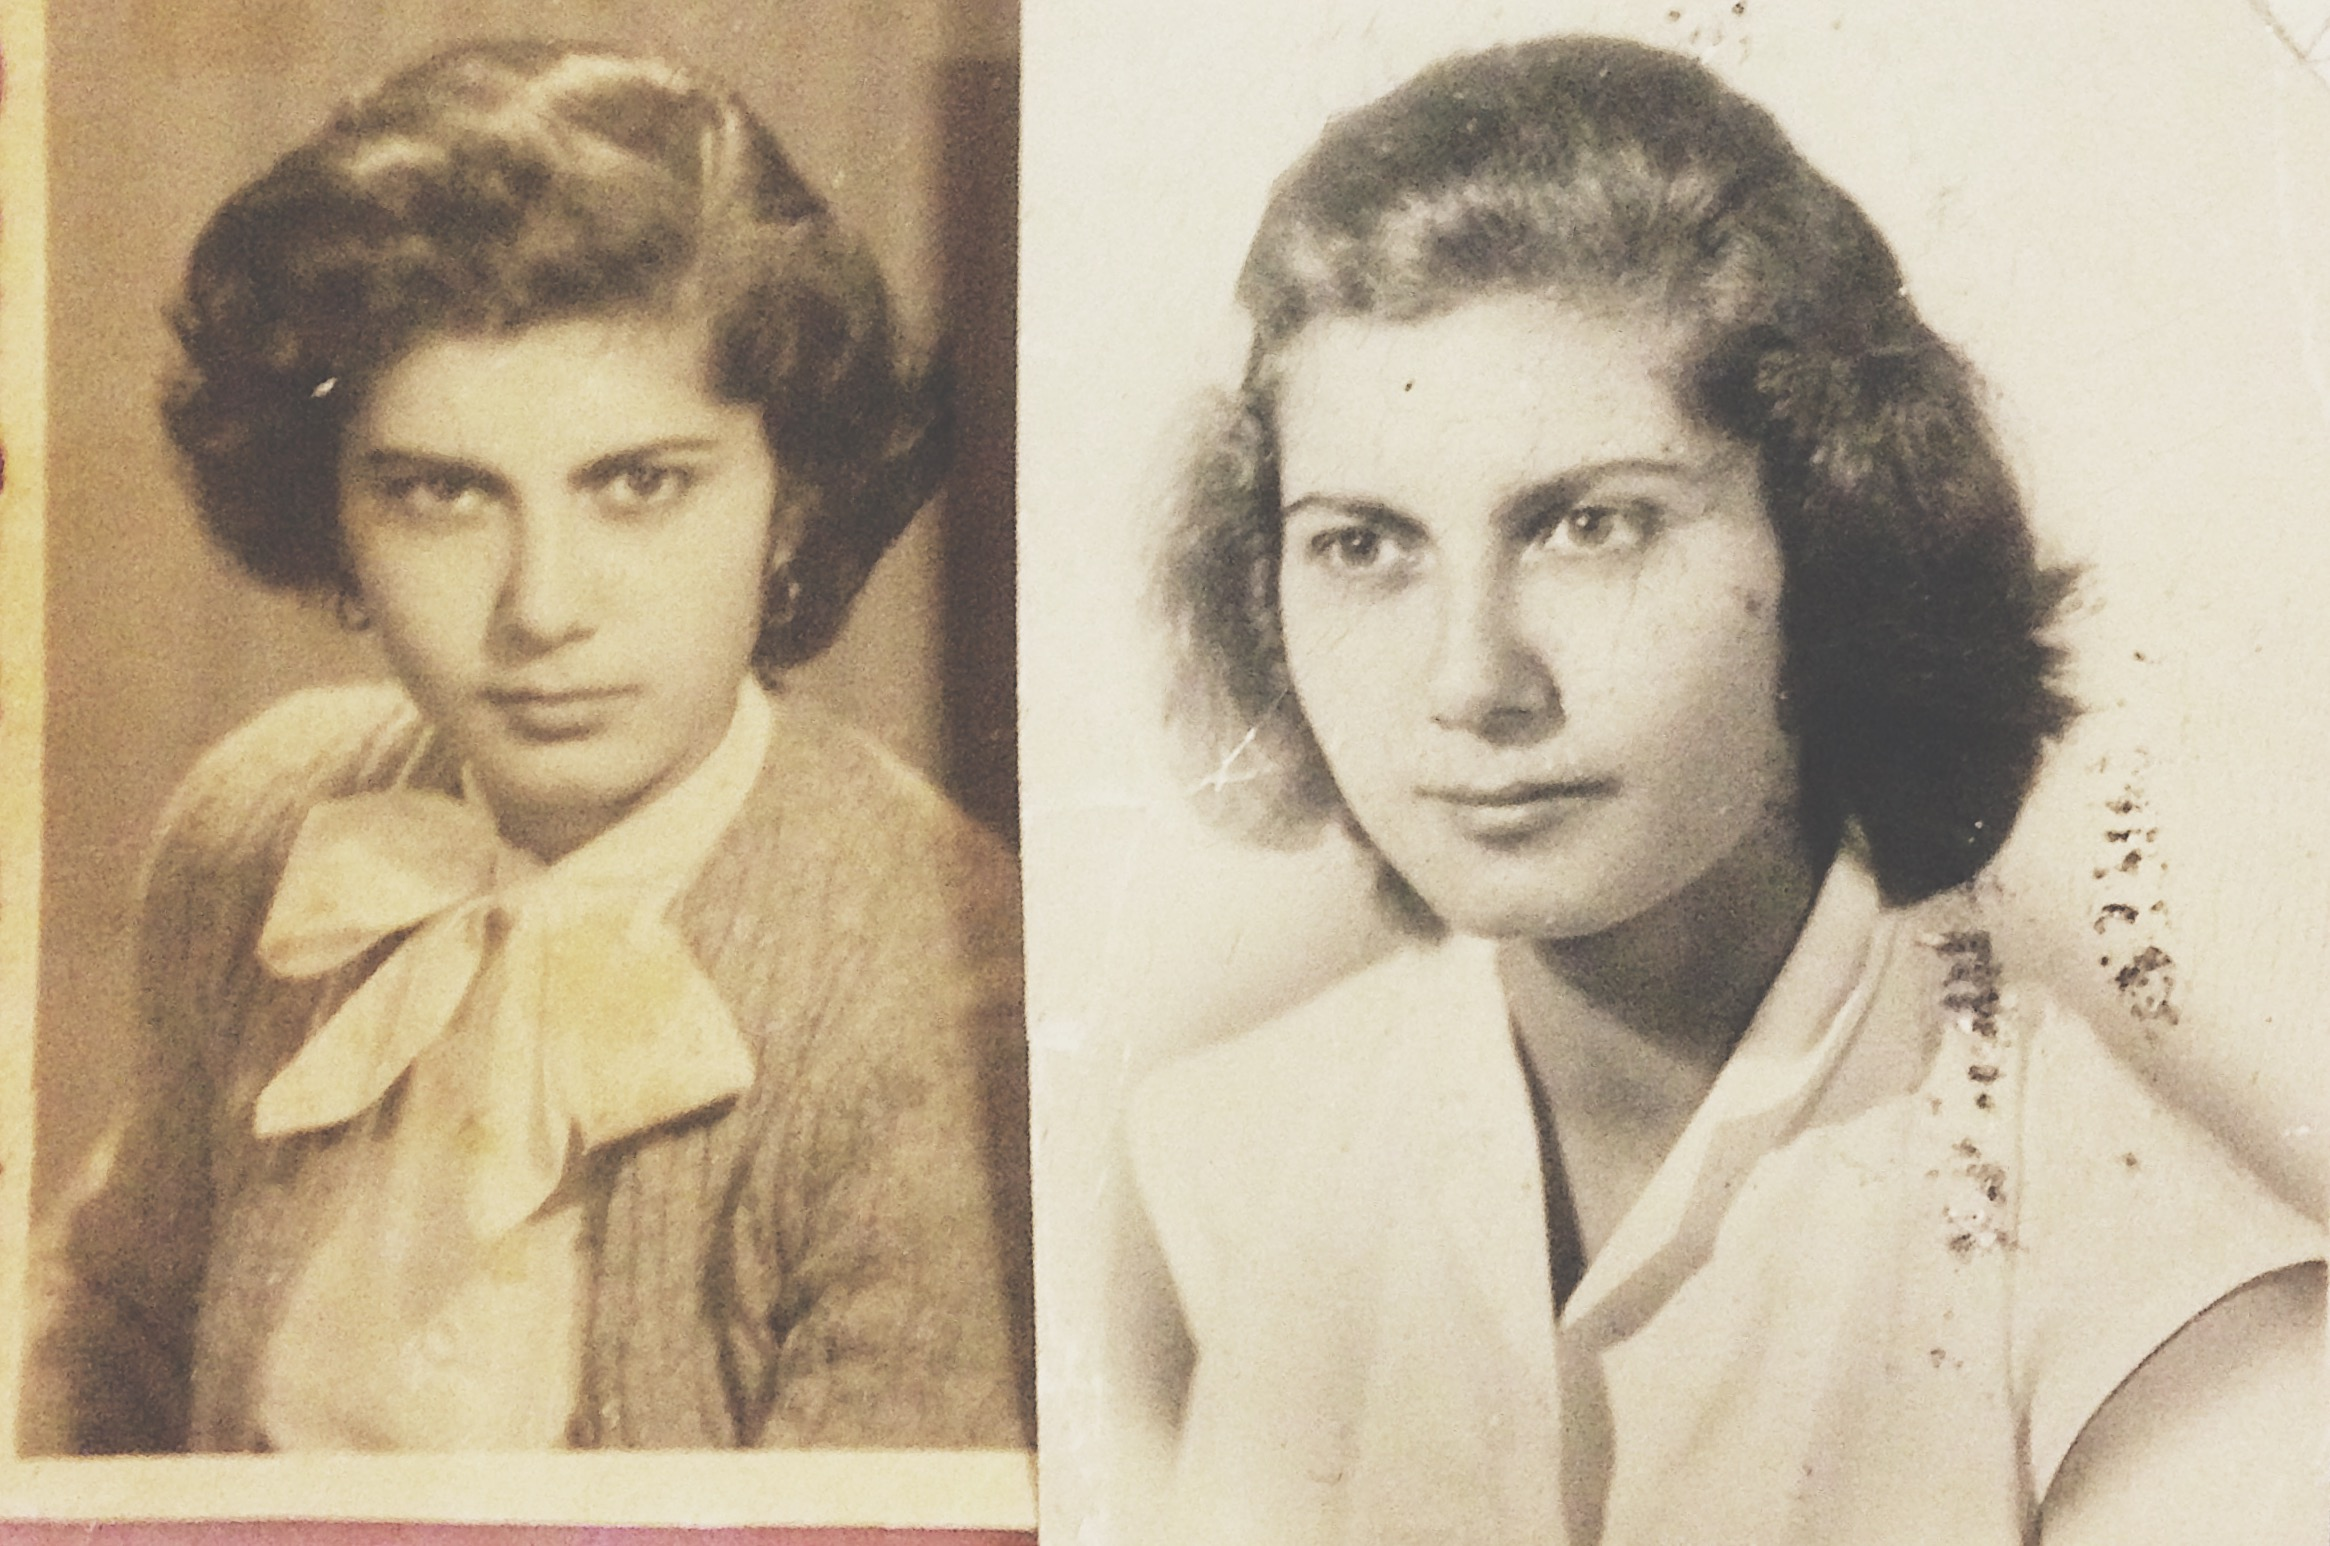 Pictures from my grandfather, of Odette.